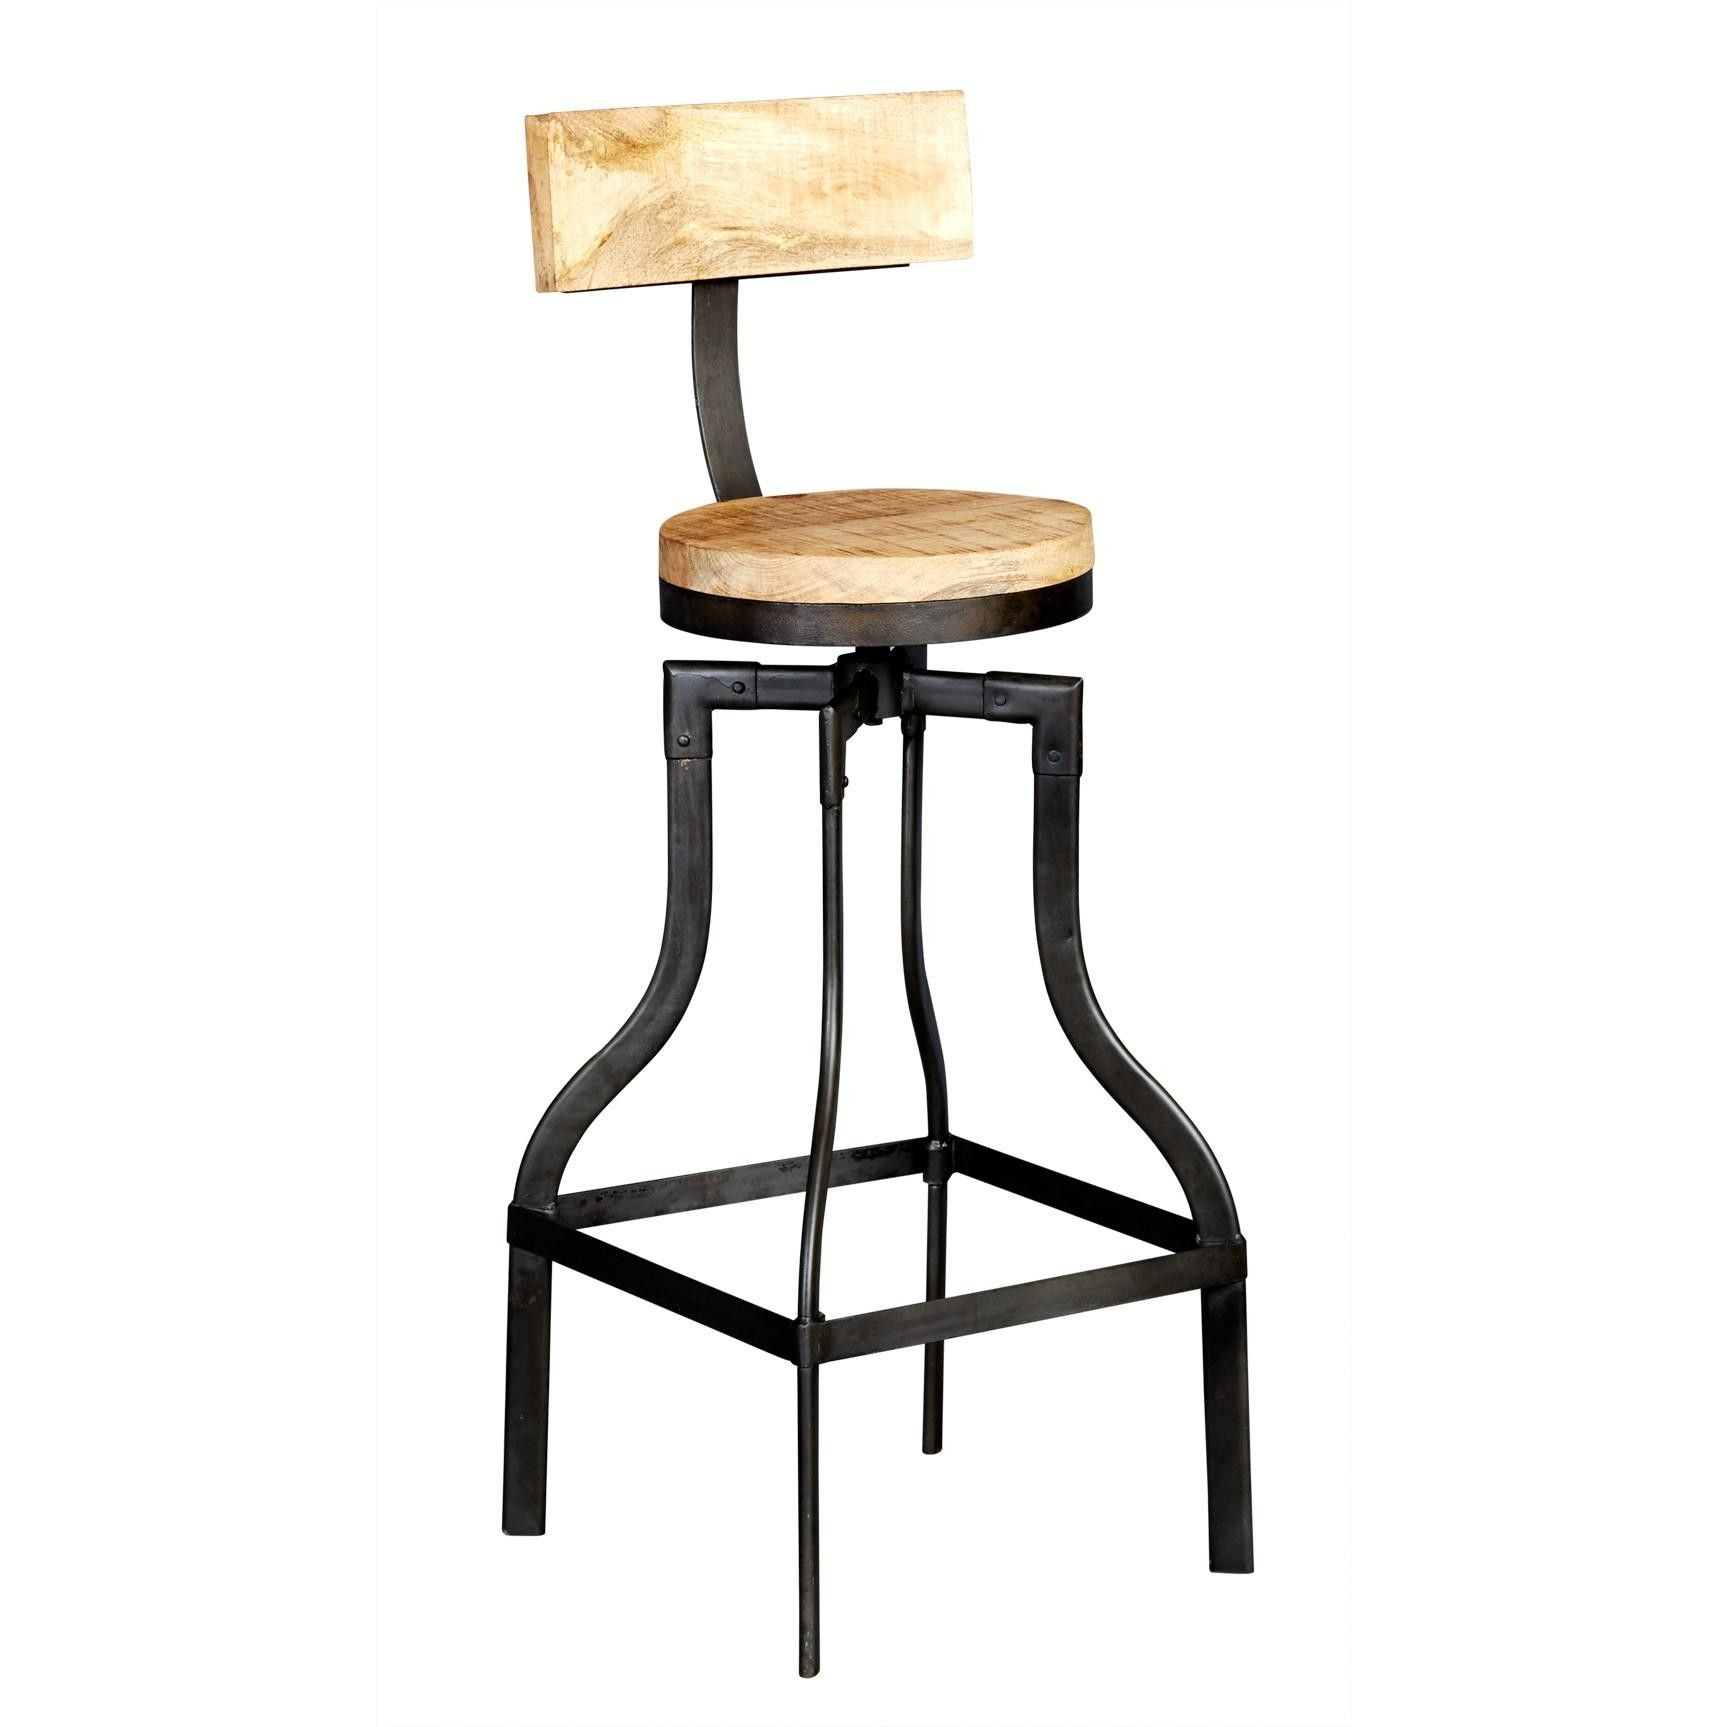 Cosmo Urban Style Industrial Chiq Metal Wood Bar Stool With